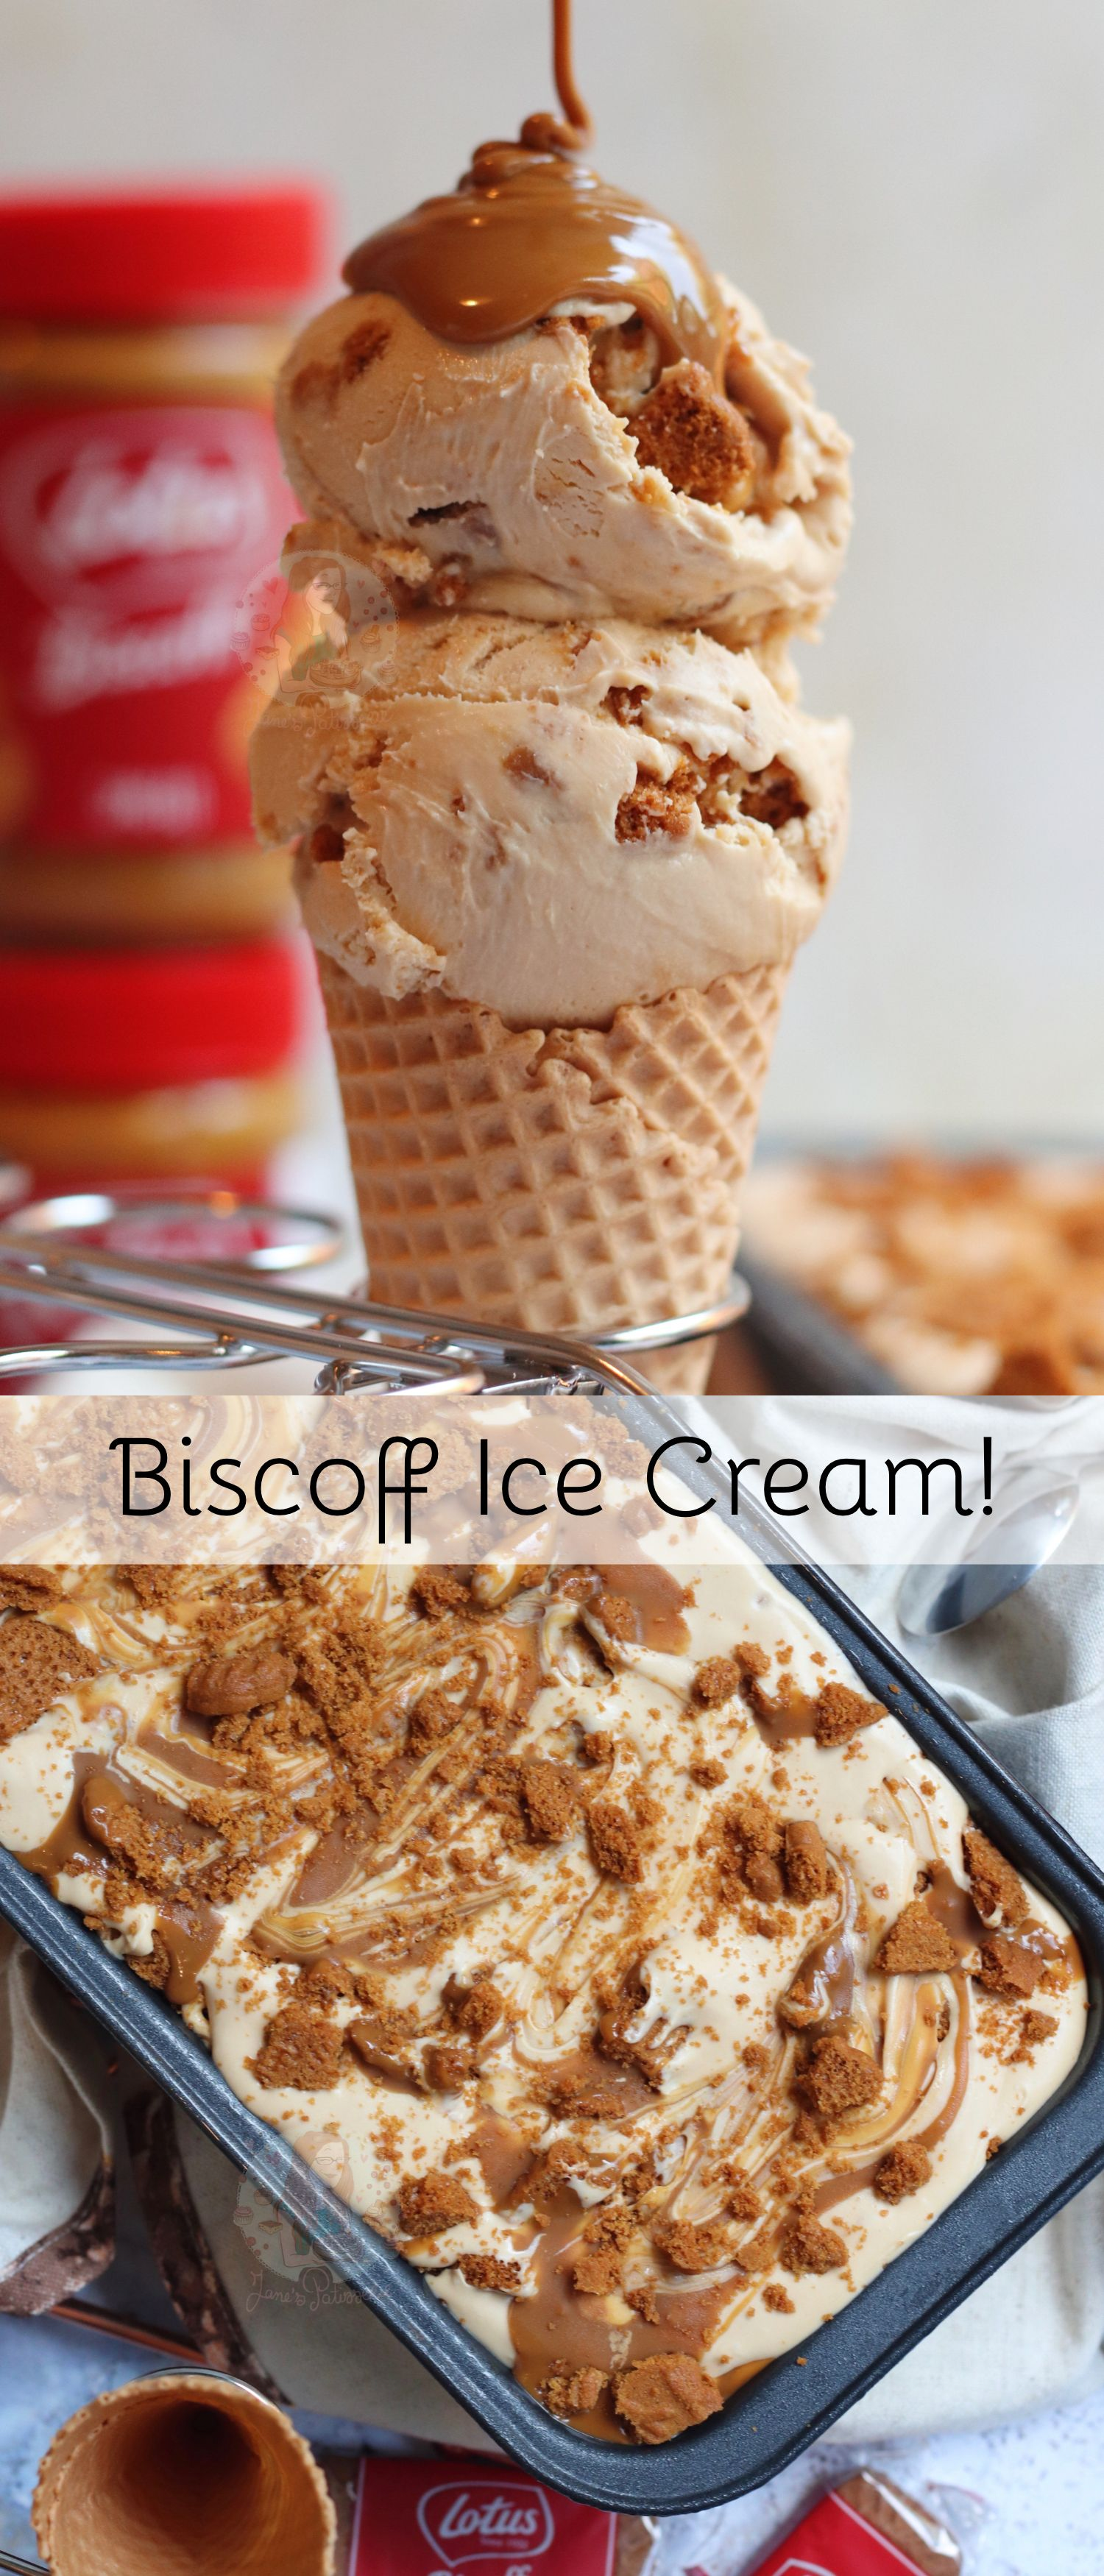 Biscoff Ice Cream!